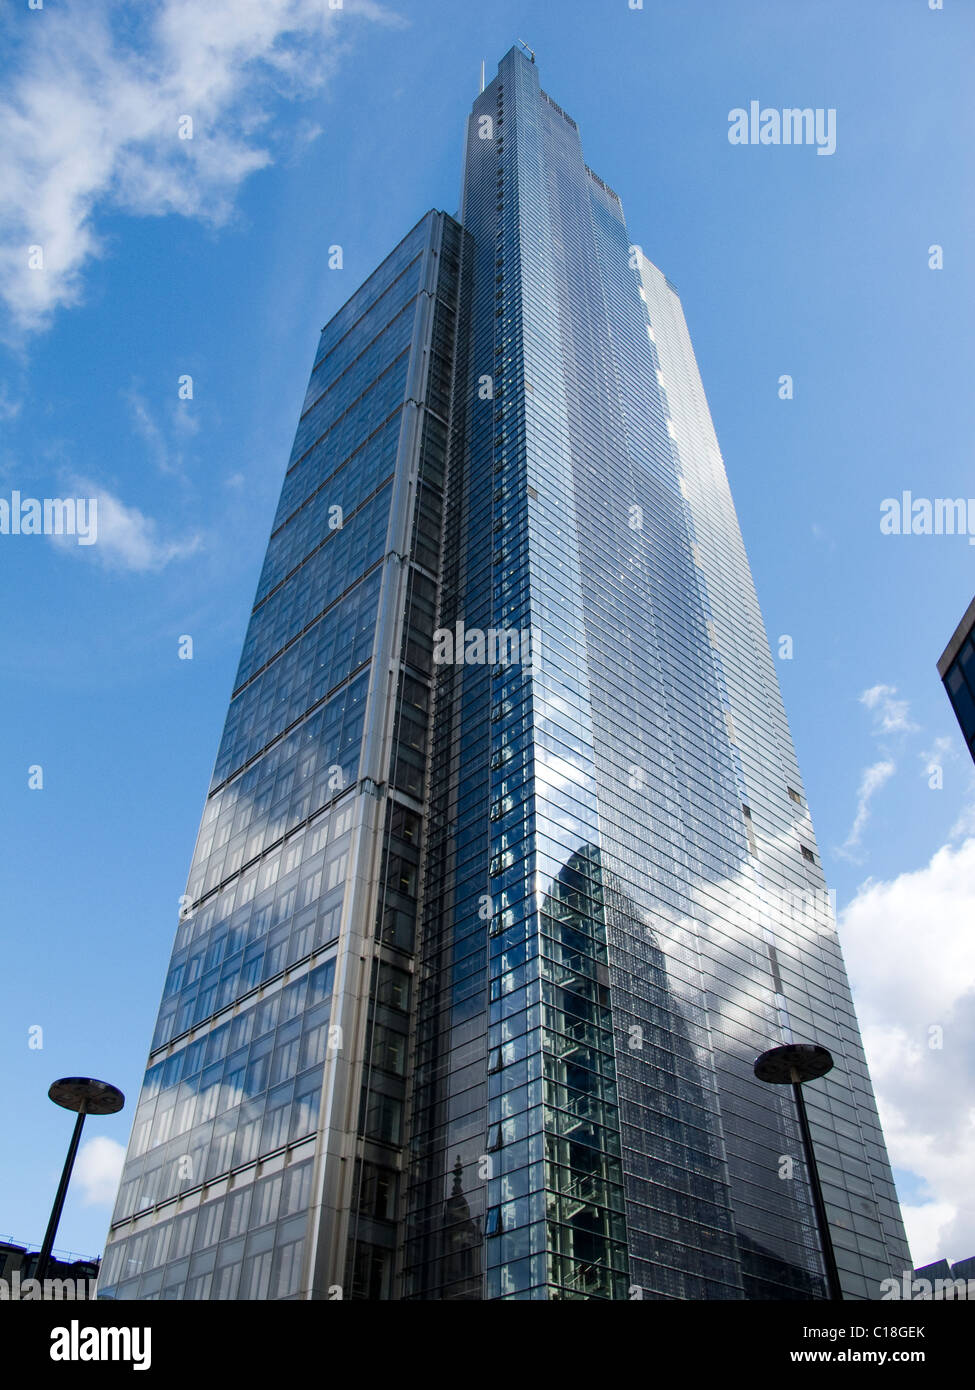 Heron Tower in Broadgate in the City of London is nearing completion - Stock Image